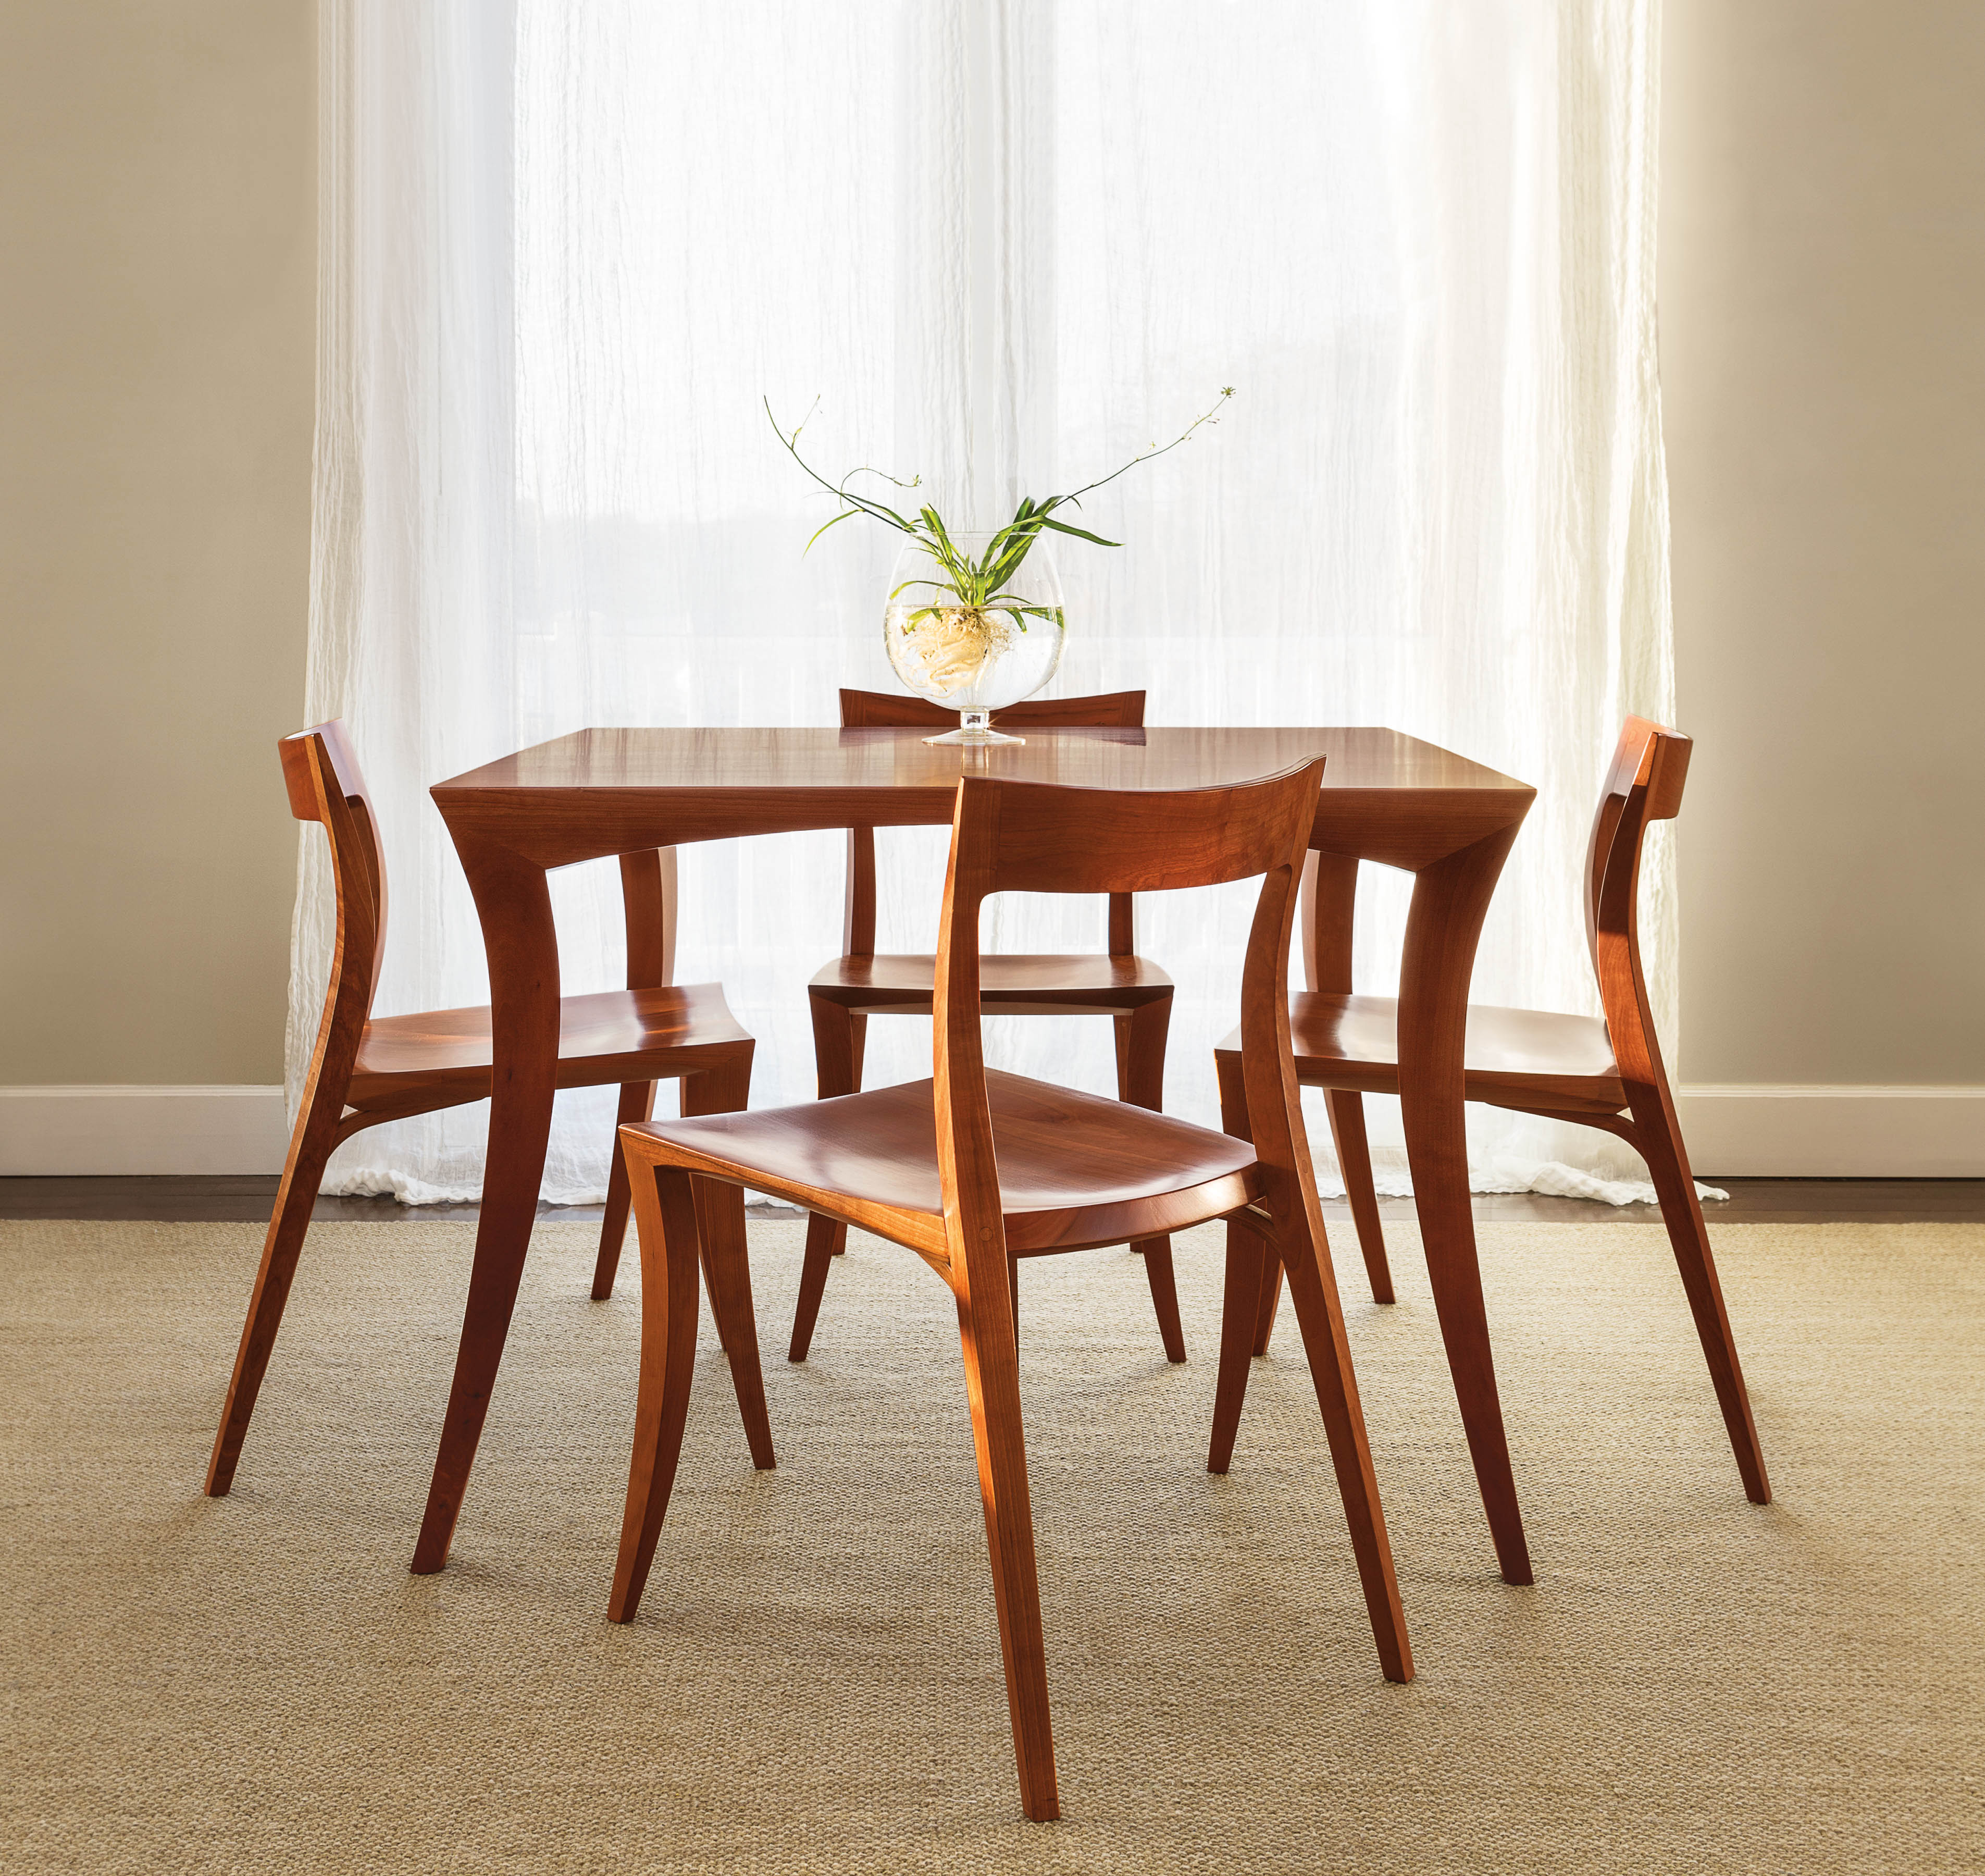 Outstanding Rockport Chair Rockport Chair Minimalist Wood Chair Moser Wooden Chairs Sale Philippines Wooden Chairs houzz-03 Wooden Dining Chairs